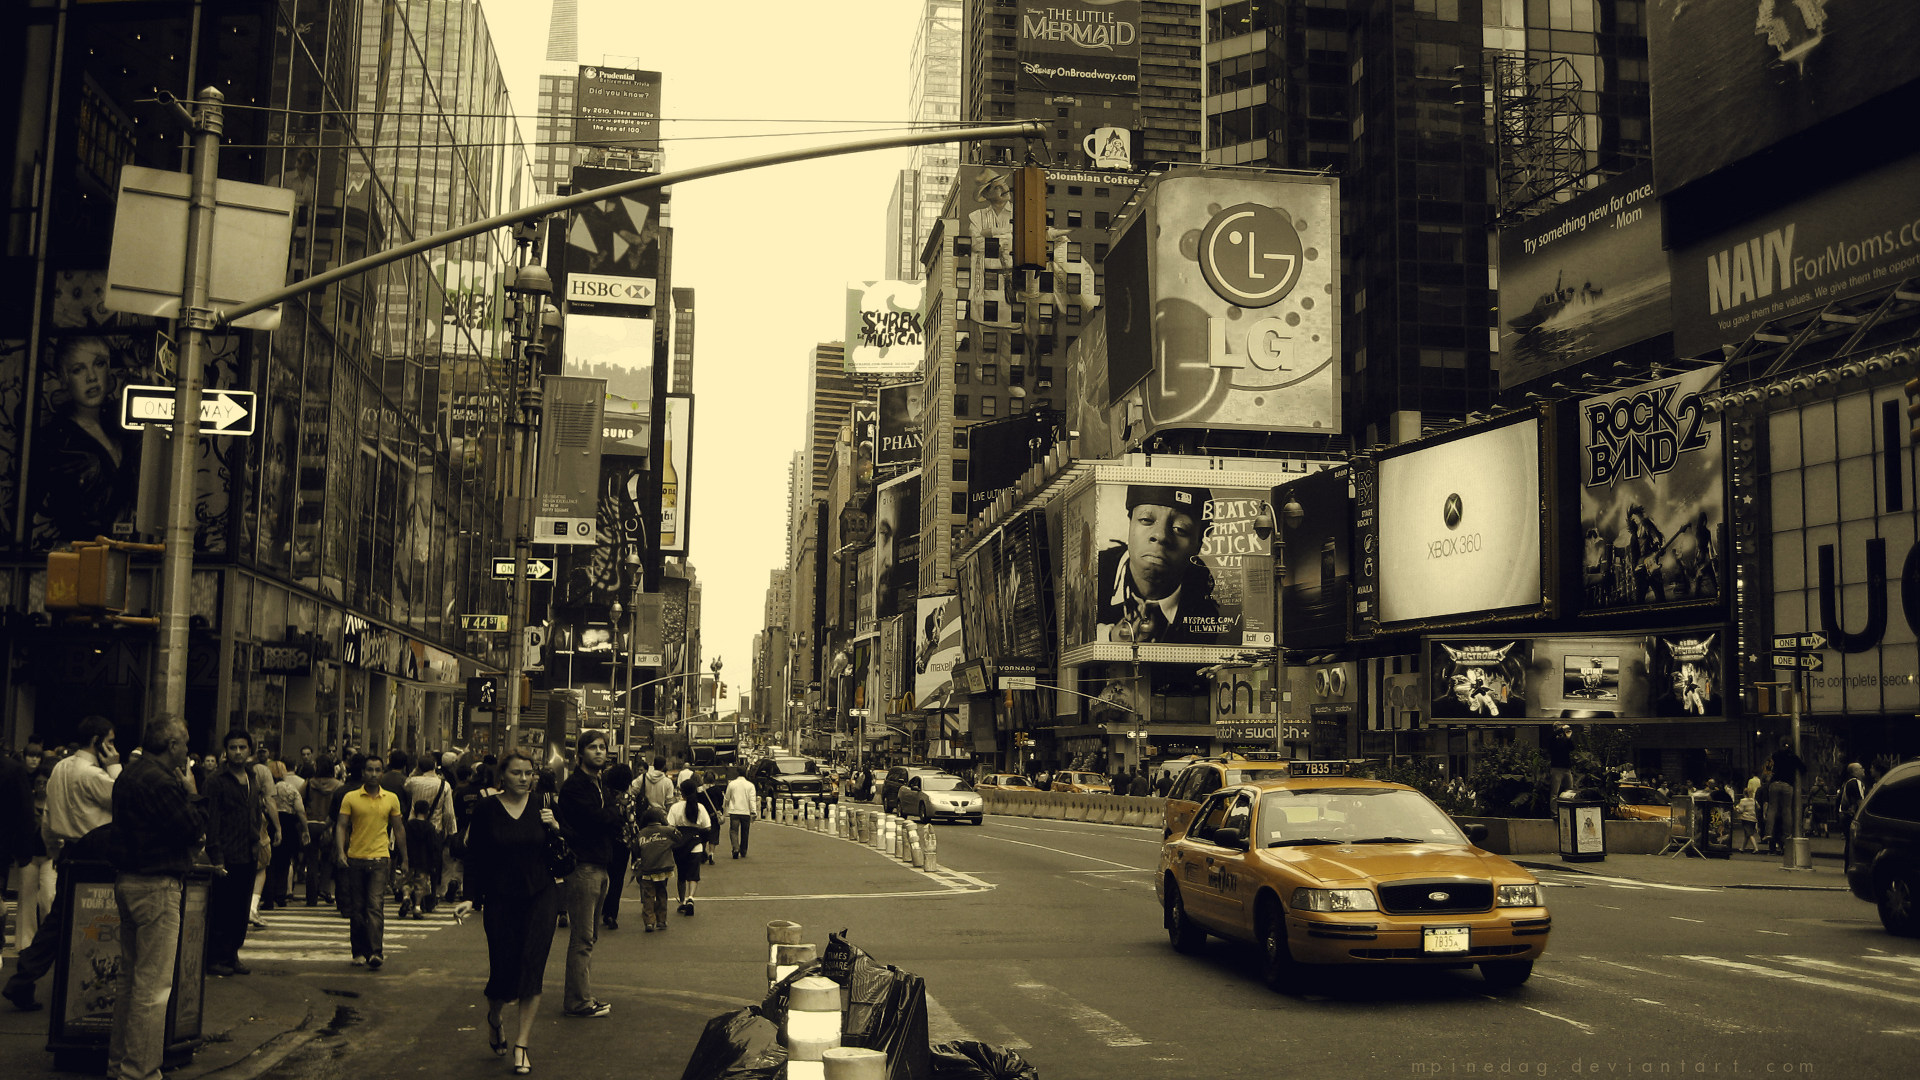 Free Download 40 Hd New York City Wallpapersbackgrounds For